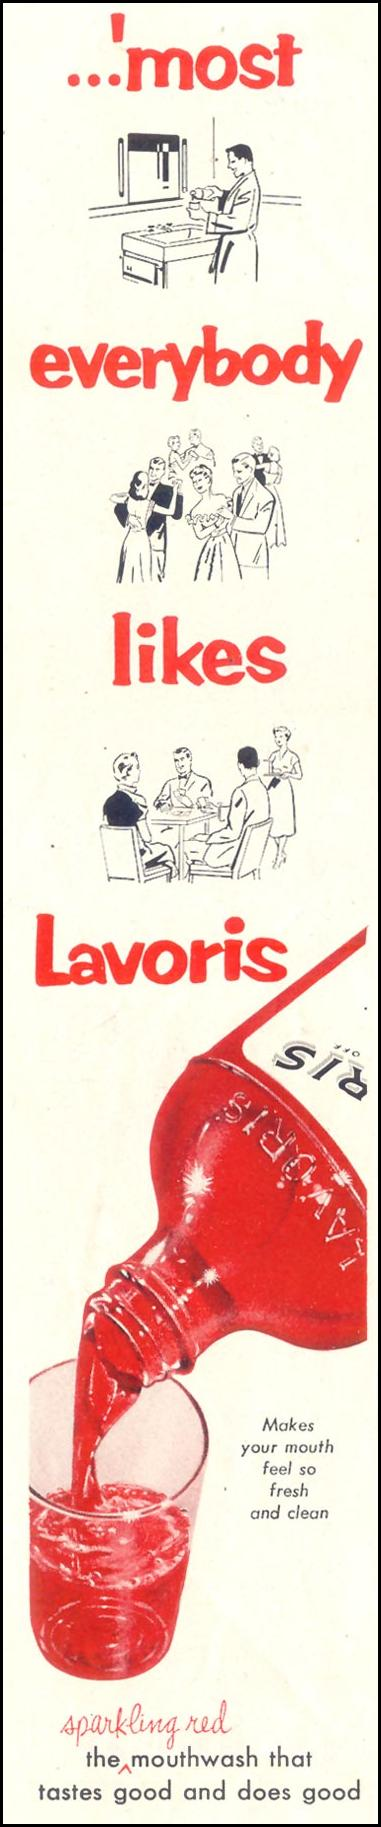 LAVORIS SATURDAY EVENING POST 07/23/1955 p. 68